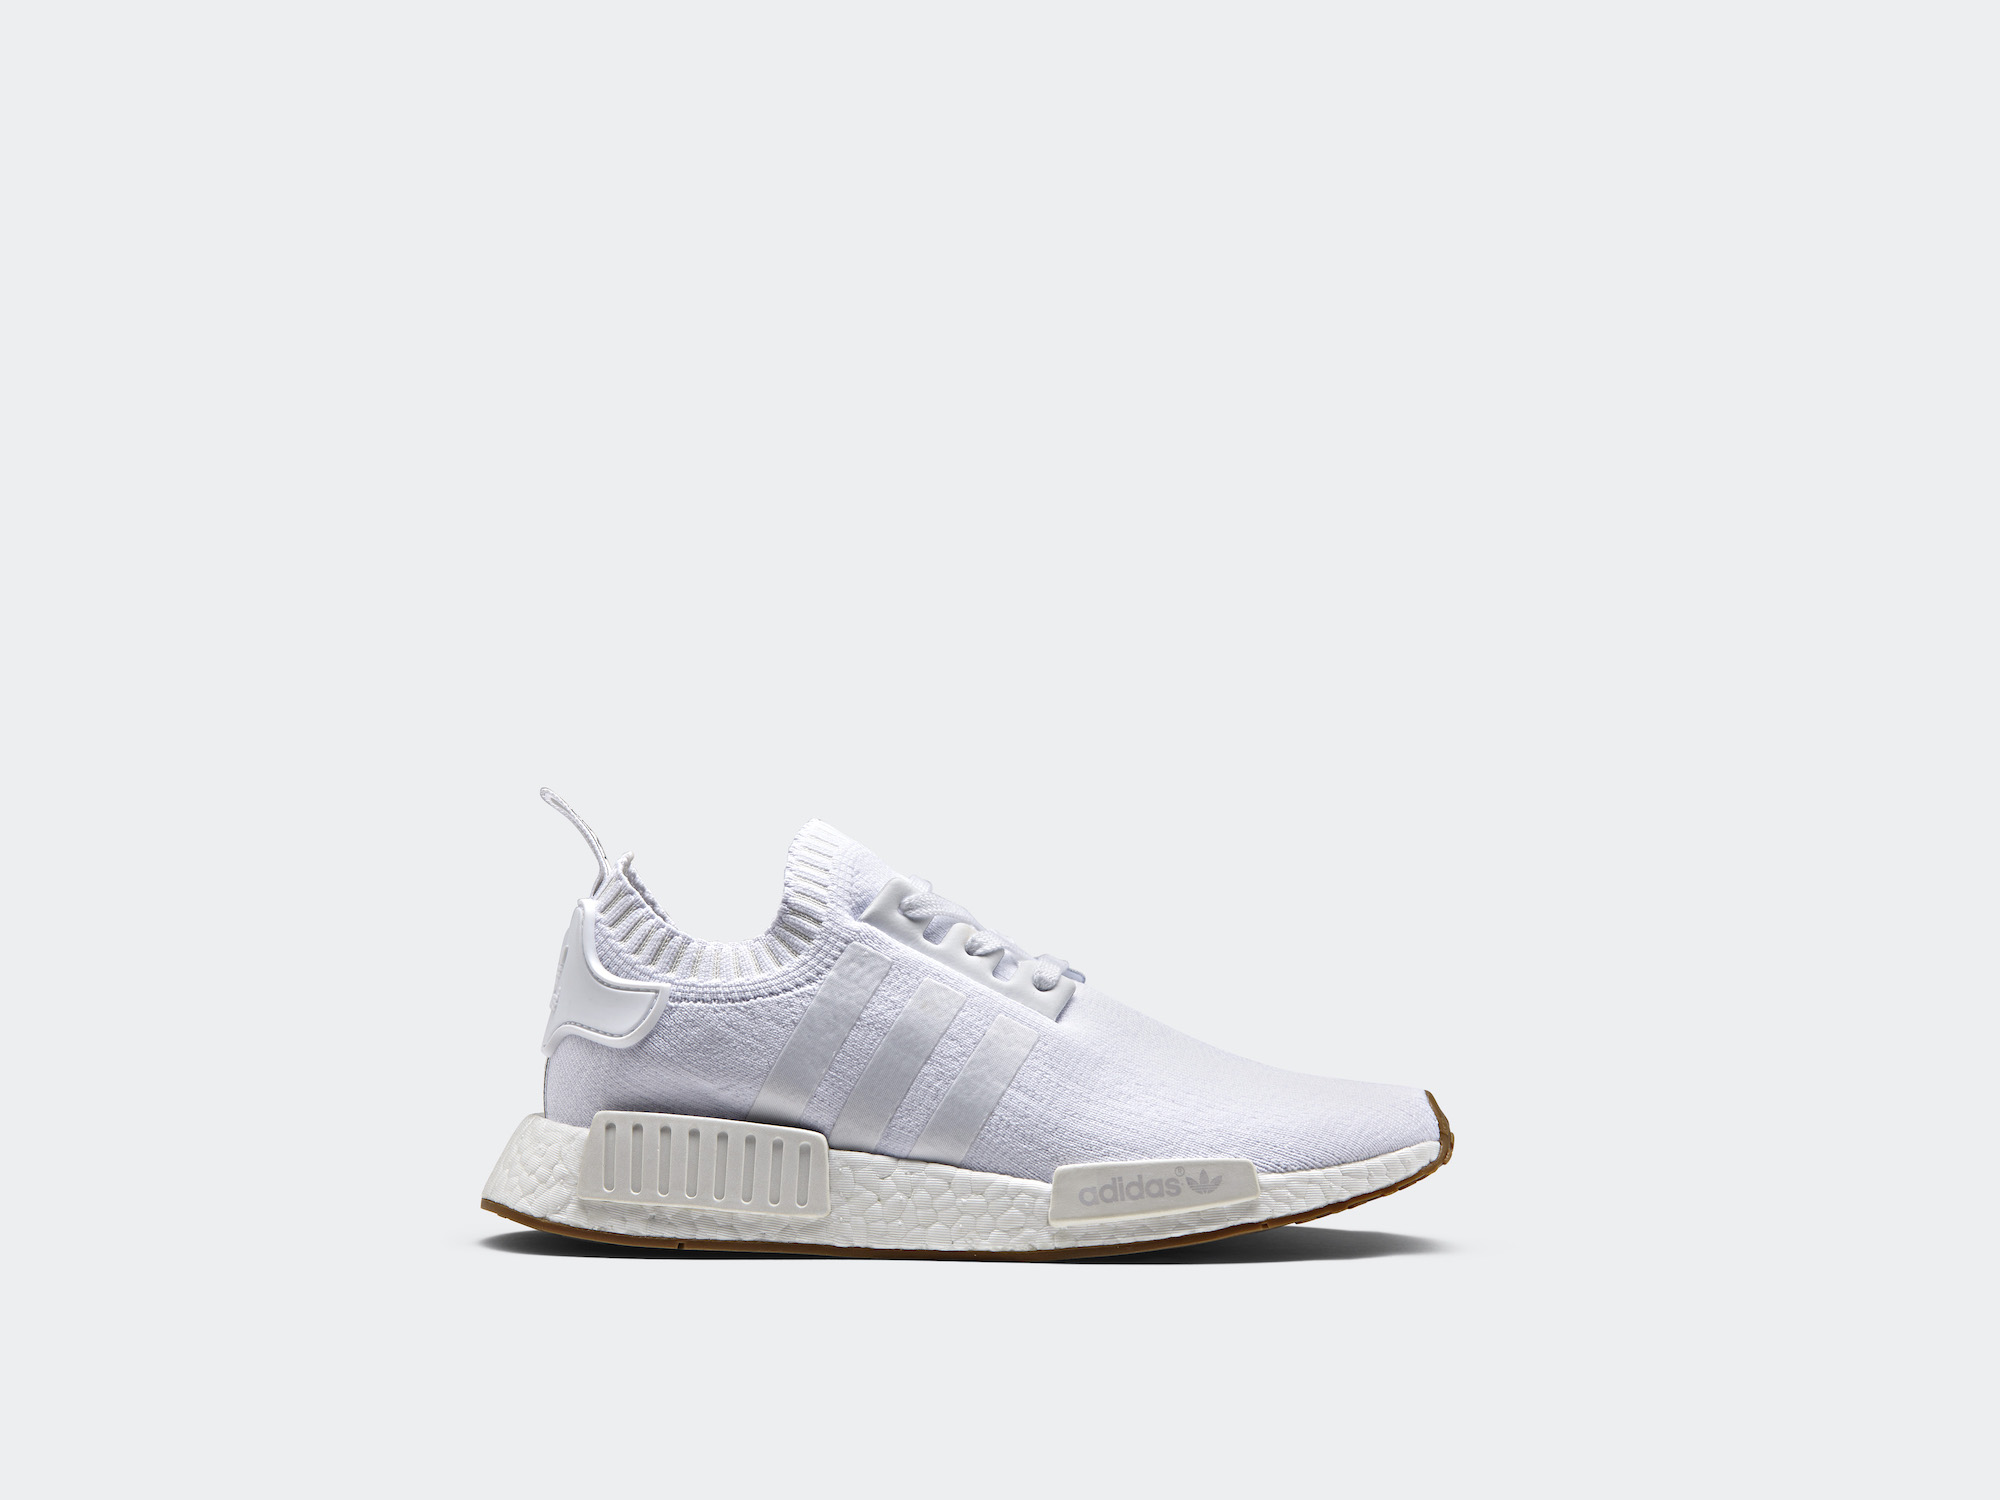 BUY Adidas NMD R1 Utility Grey